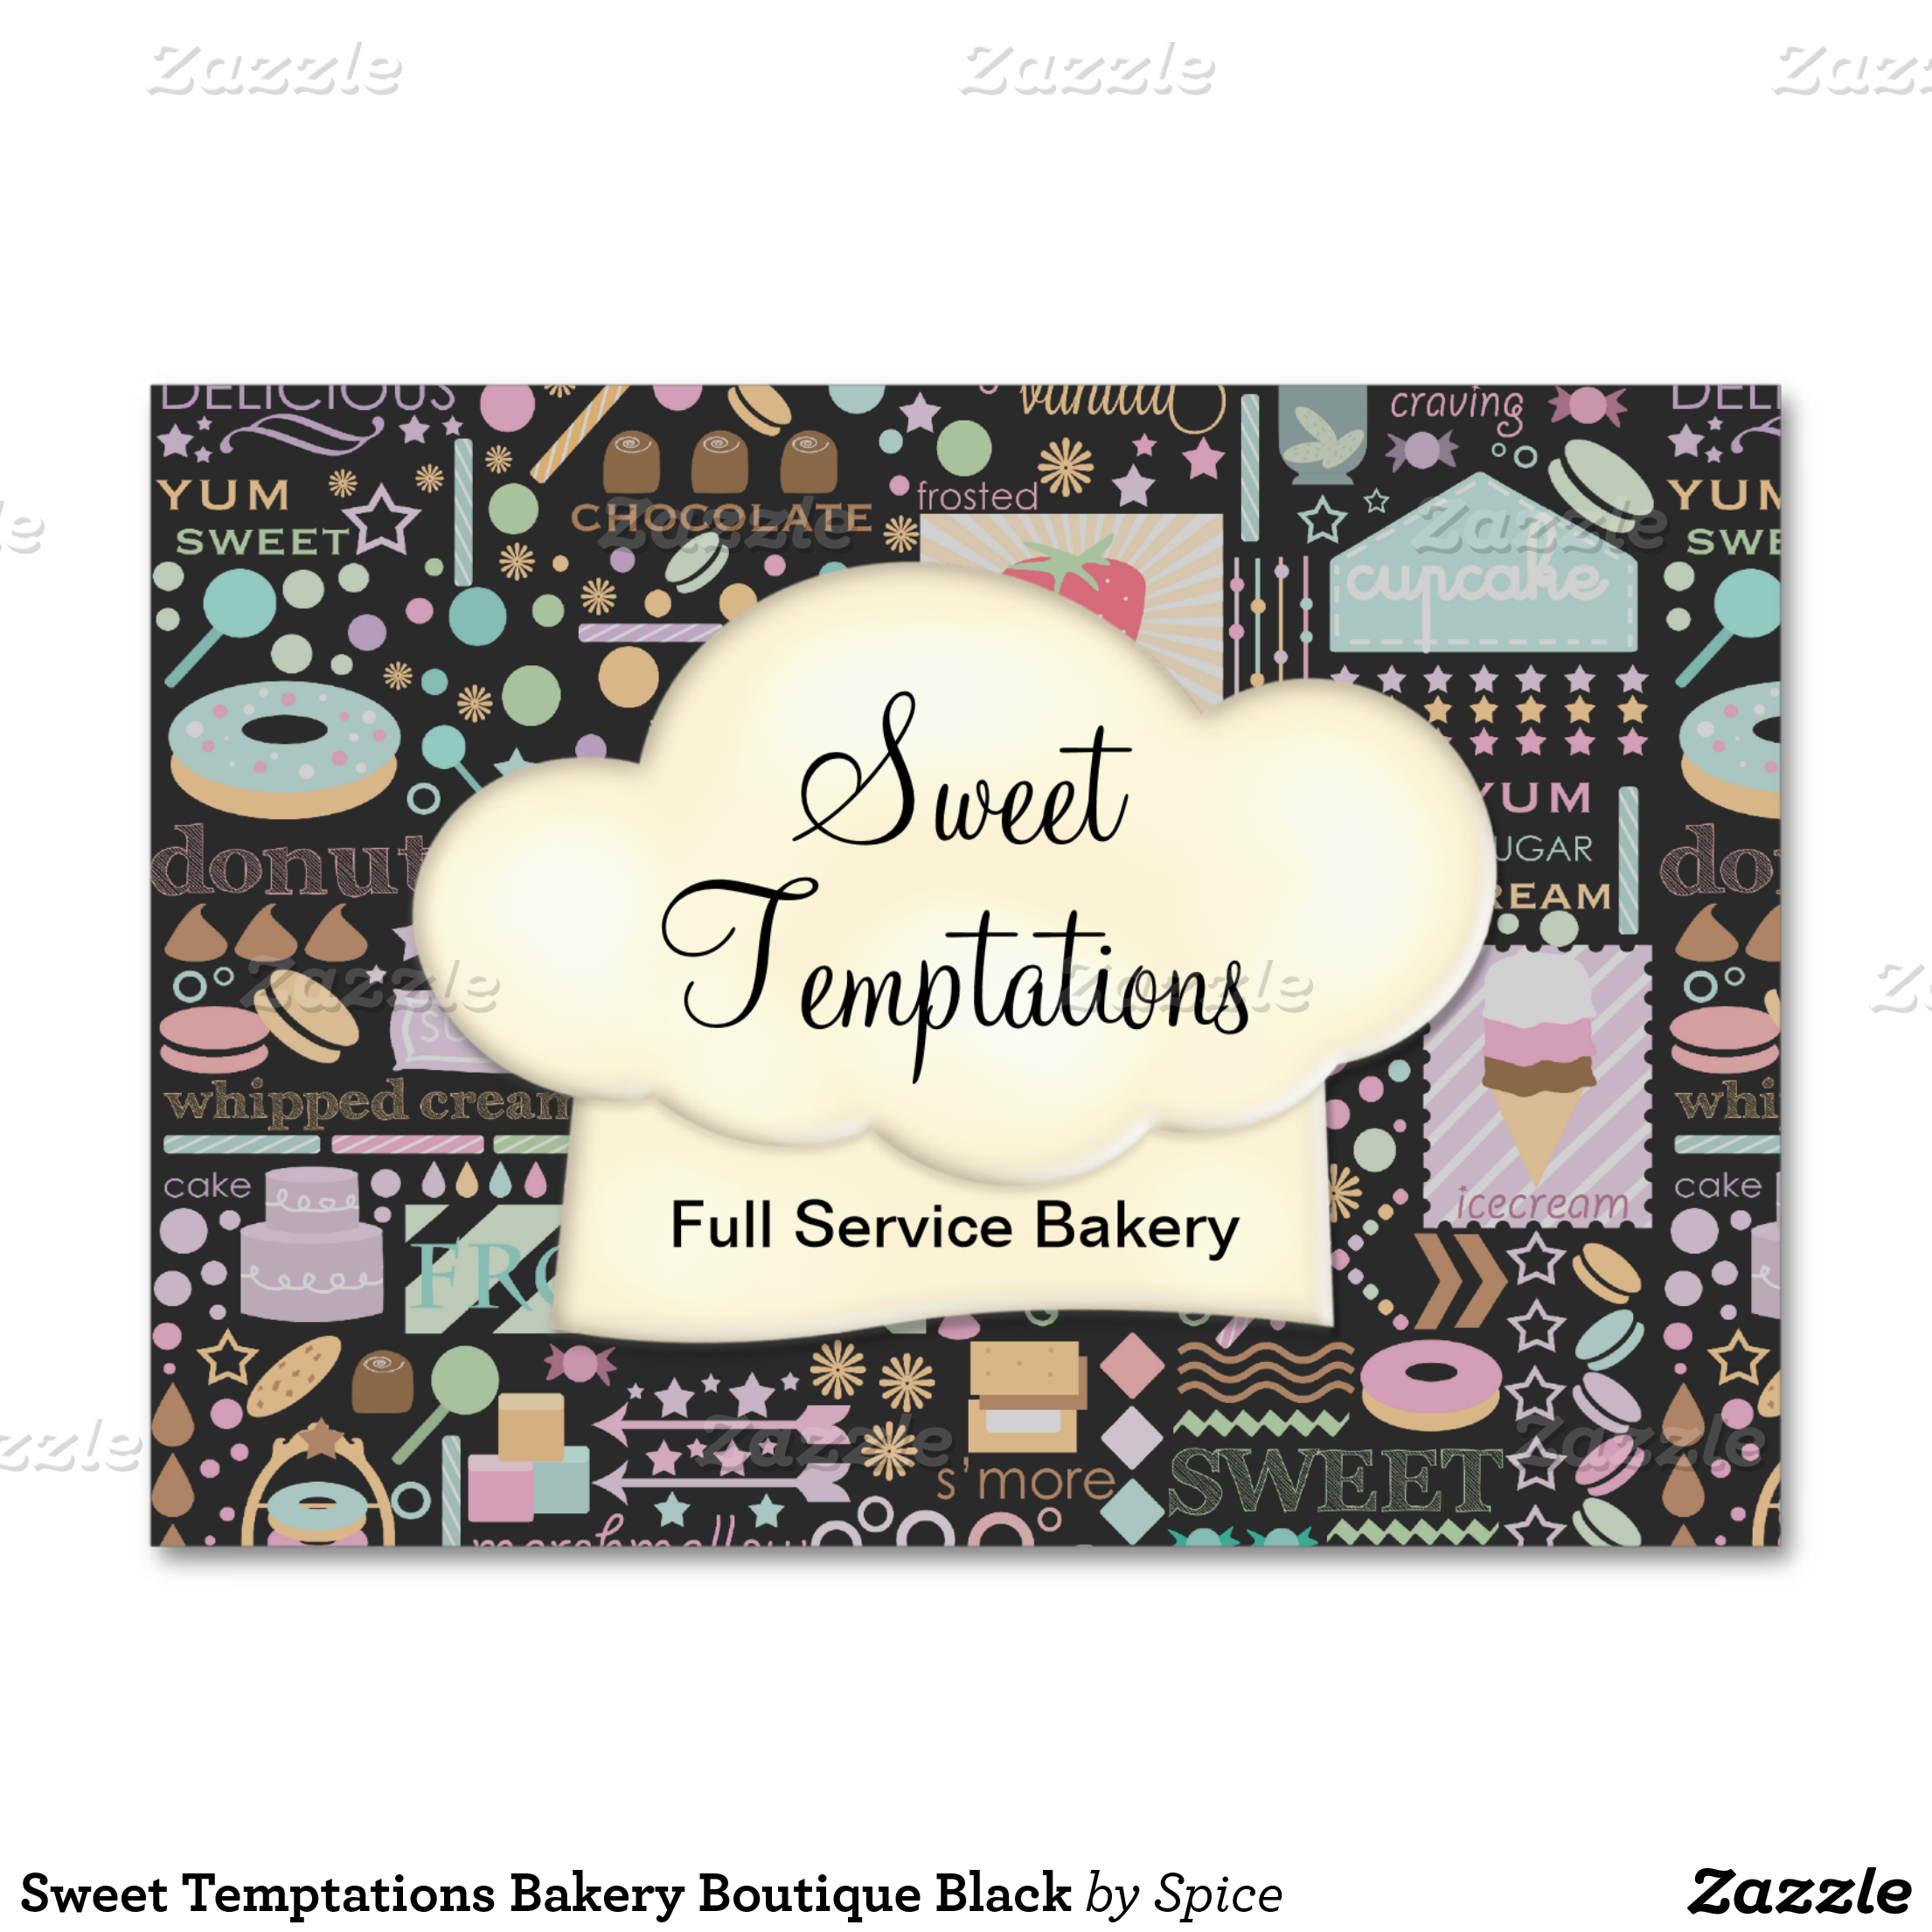 sweet temptations bakery boutique black business card